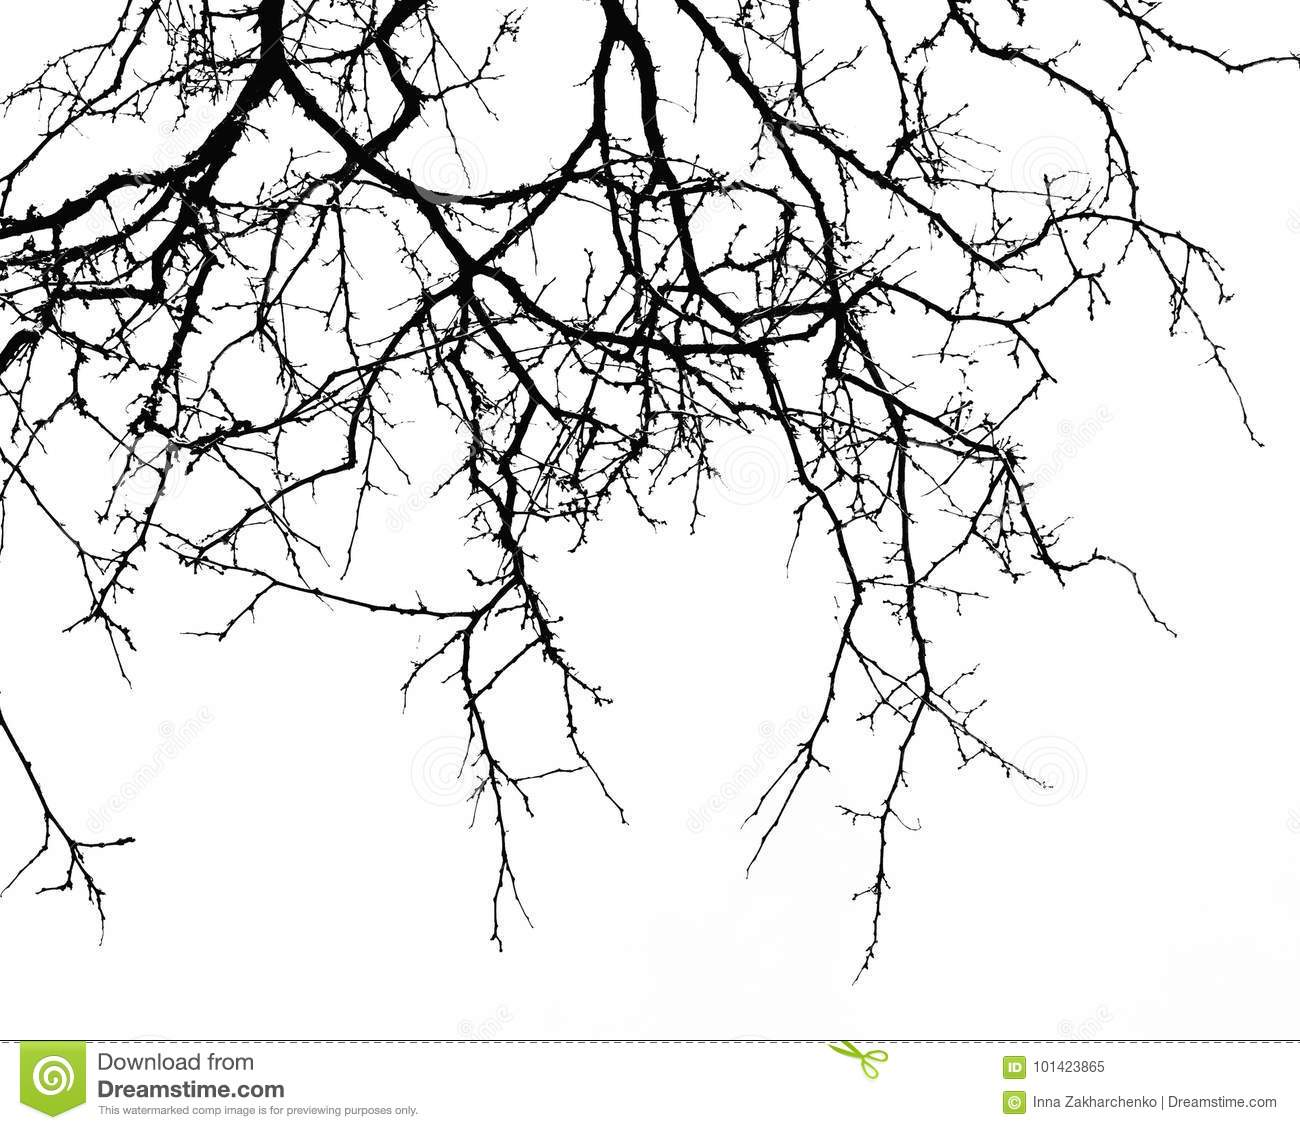 Abstract Halloween Background Black Branch Of Tree On A White B Stock Image Image Of Halloween Horror 101423865